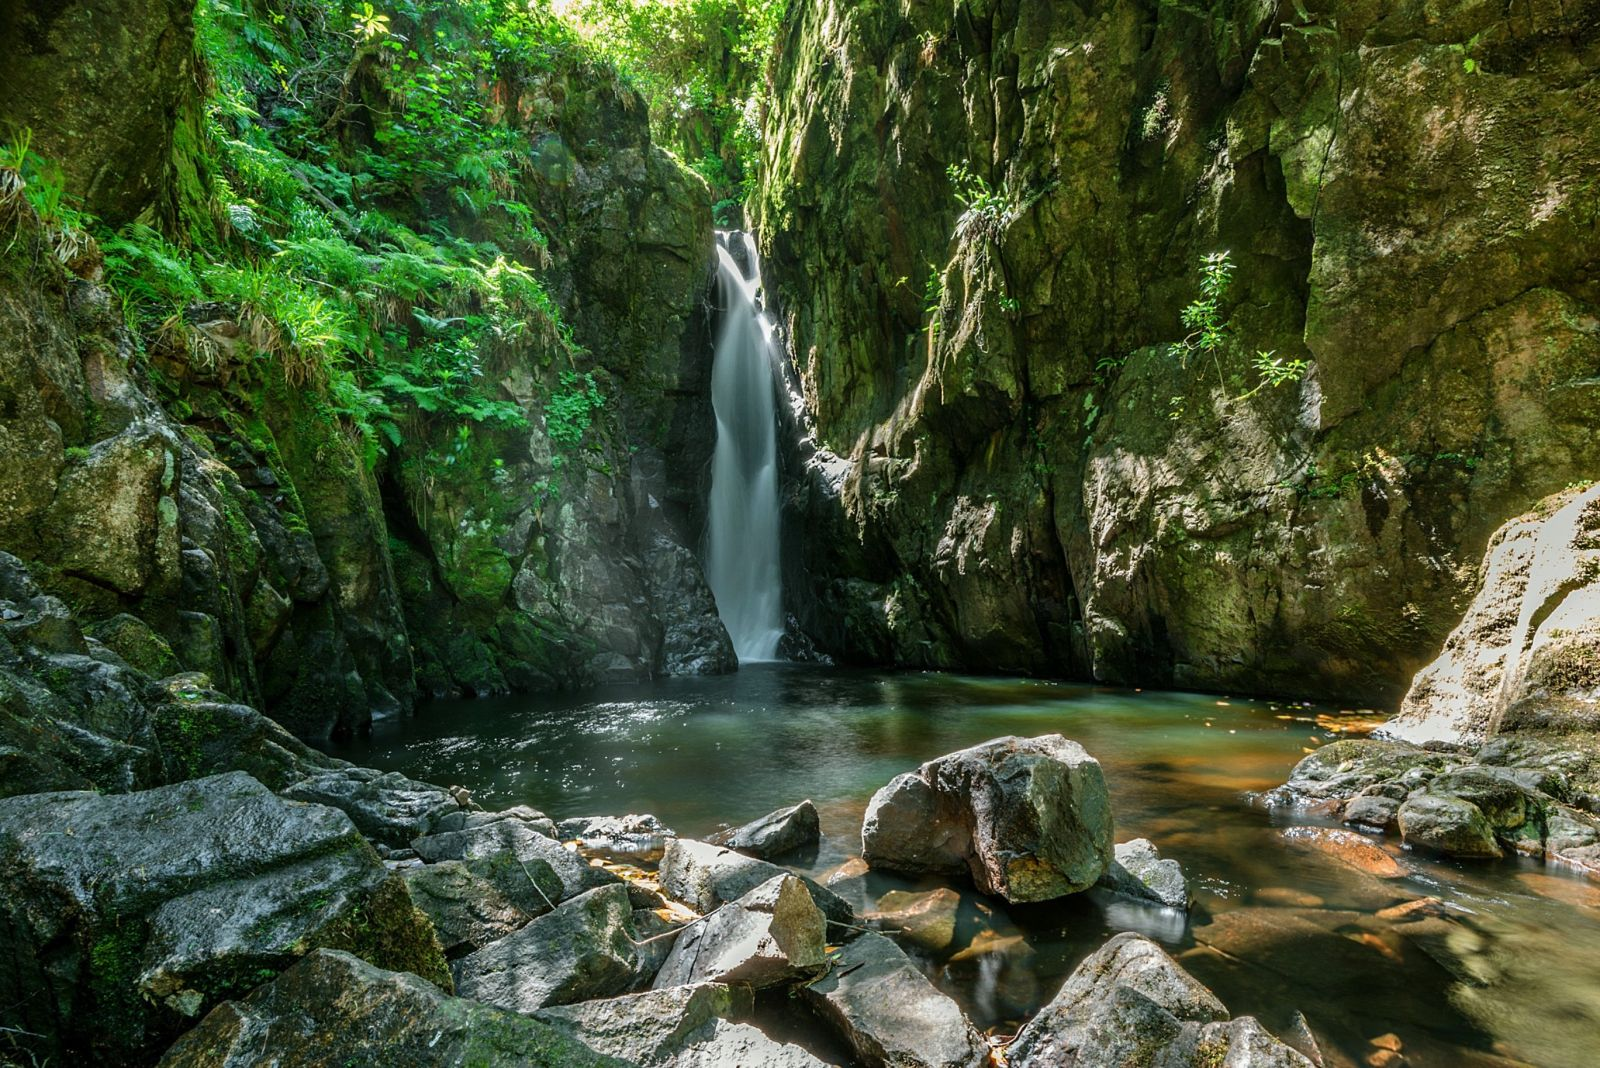 Stanley Ghyll 60ft waterfall is a stunning, shorter walk from the cottages